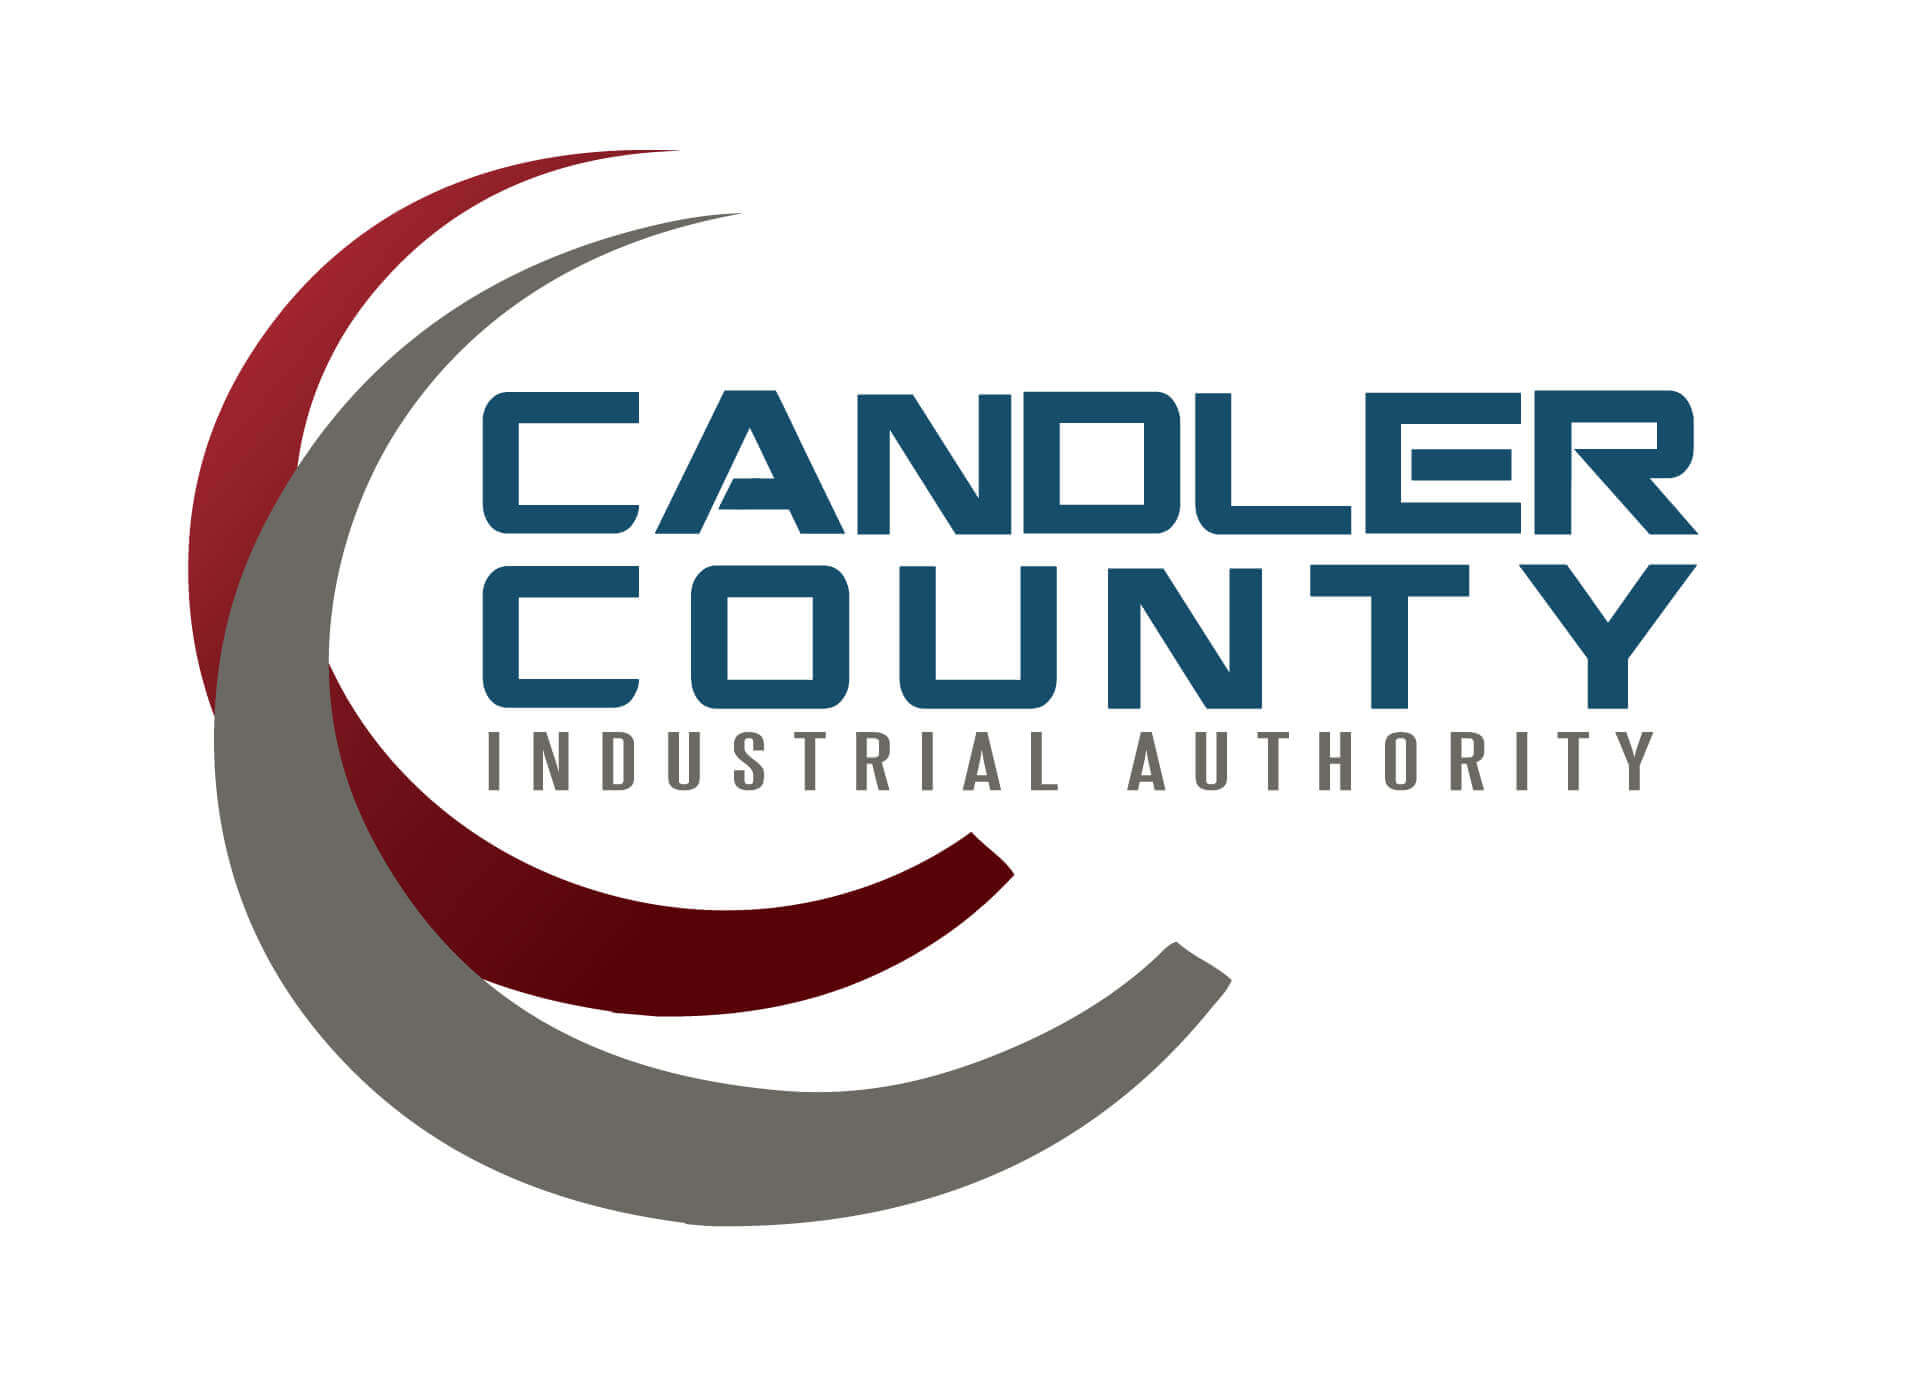 Candler County